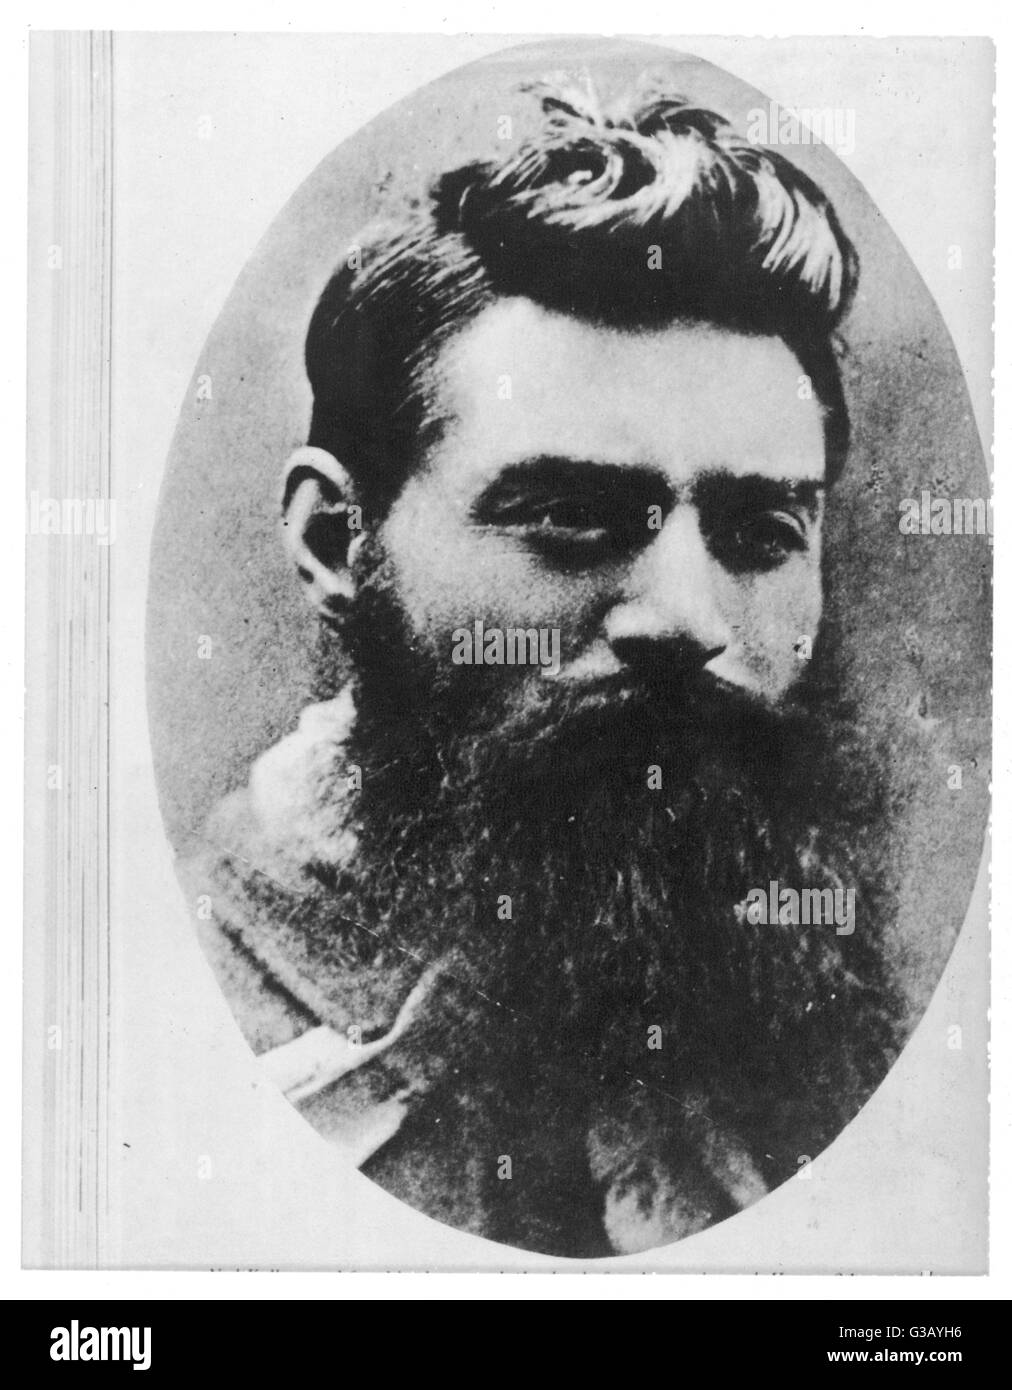 Portrait photograph of Australian bushranger Ned Kelly, taken the day before  his hanging at the age of 24.     Stock Photo